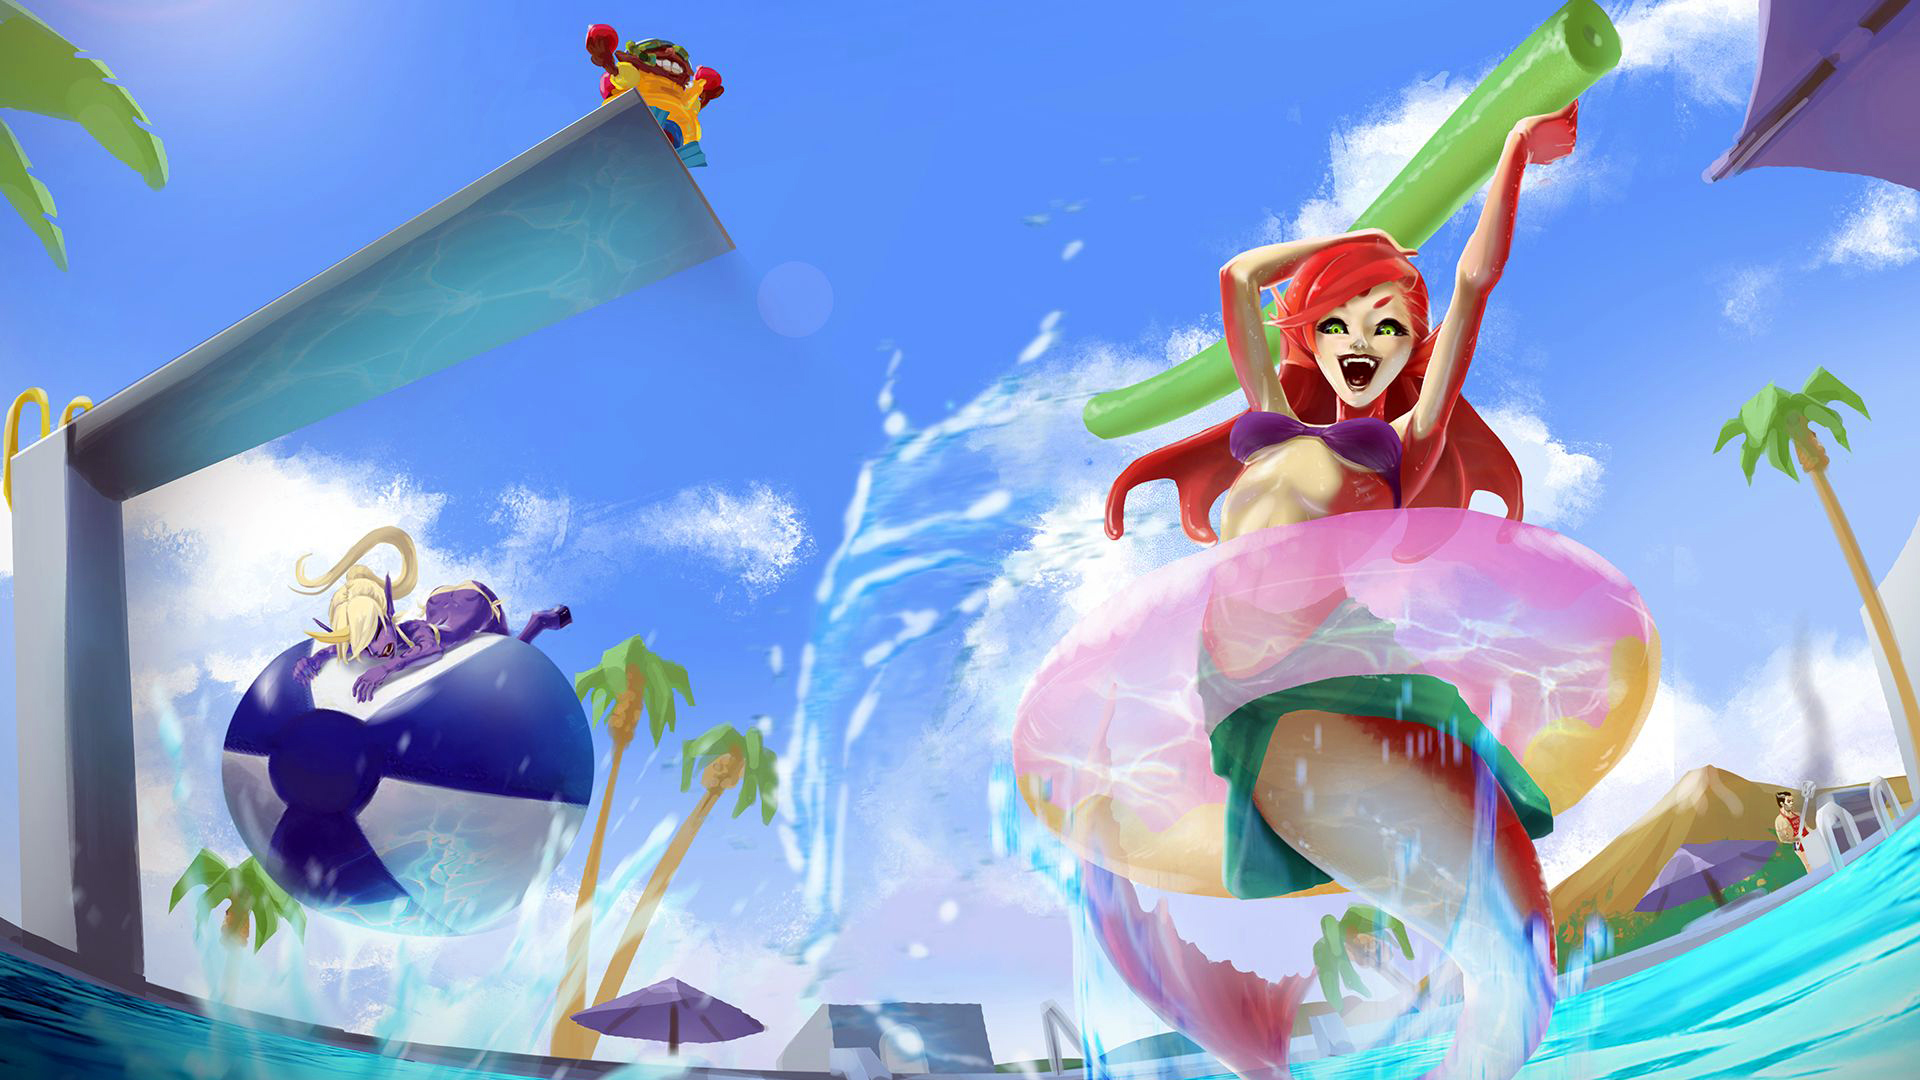 Game wallpaper league of legends yasuo wallpapers iphone with high - Pool Party Nami Wallpaper Hd